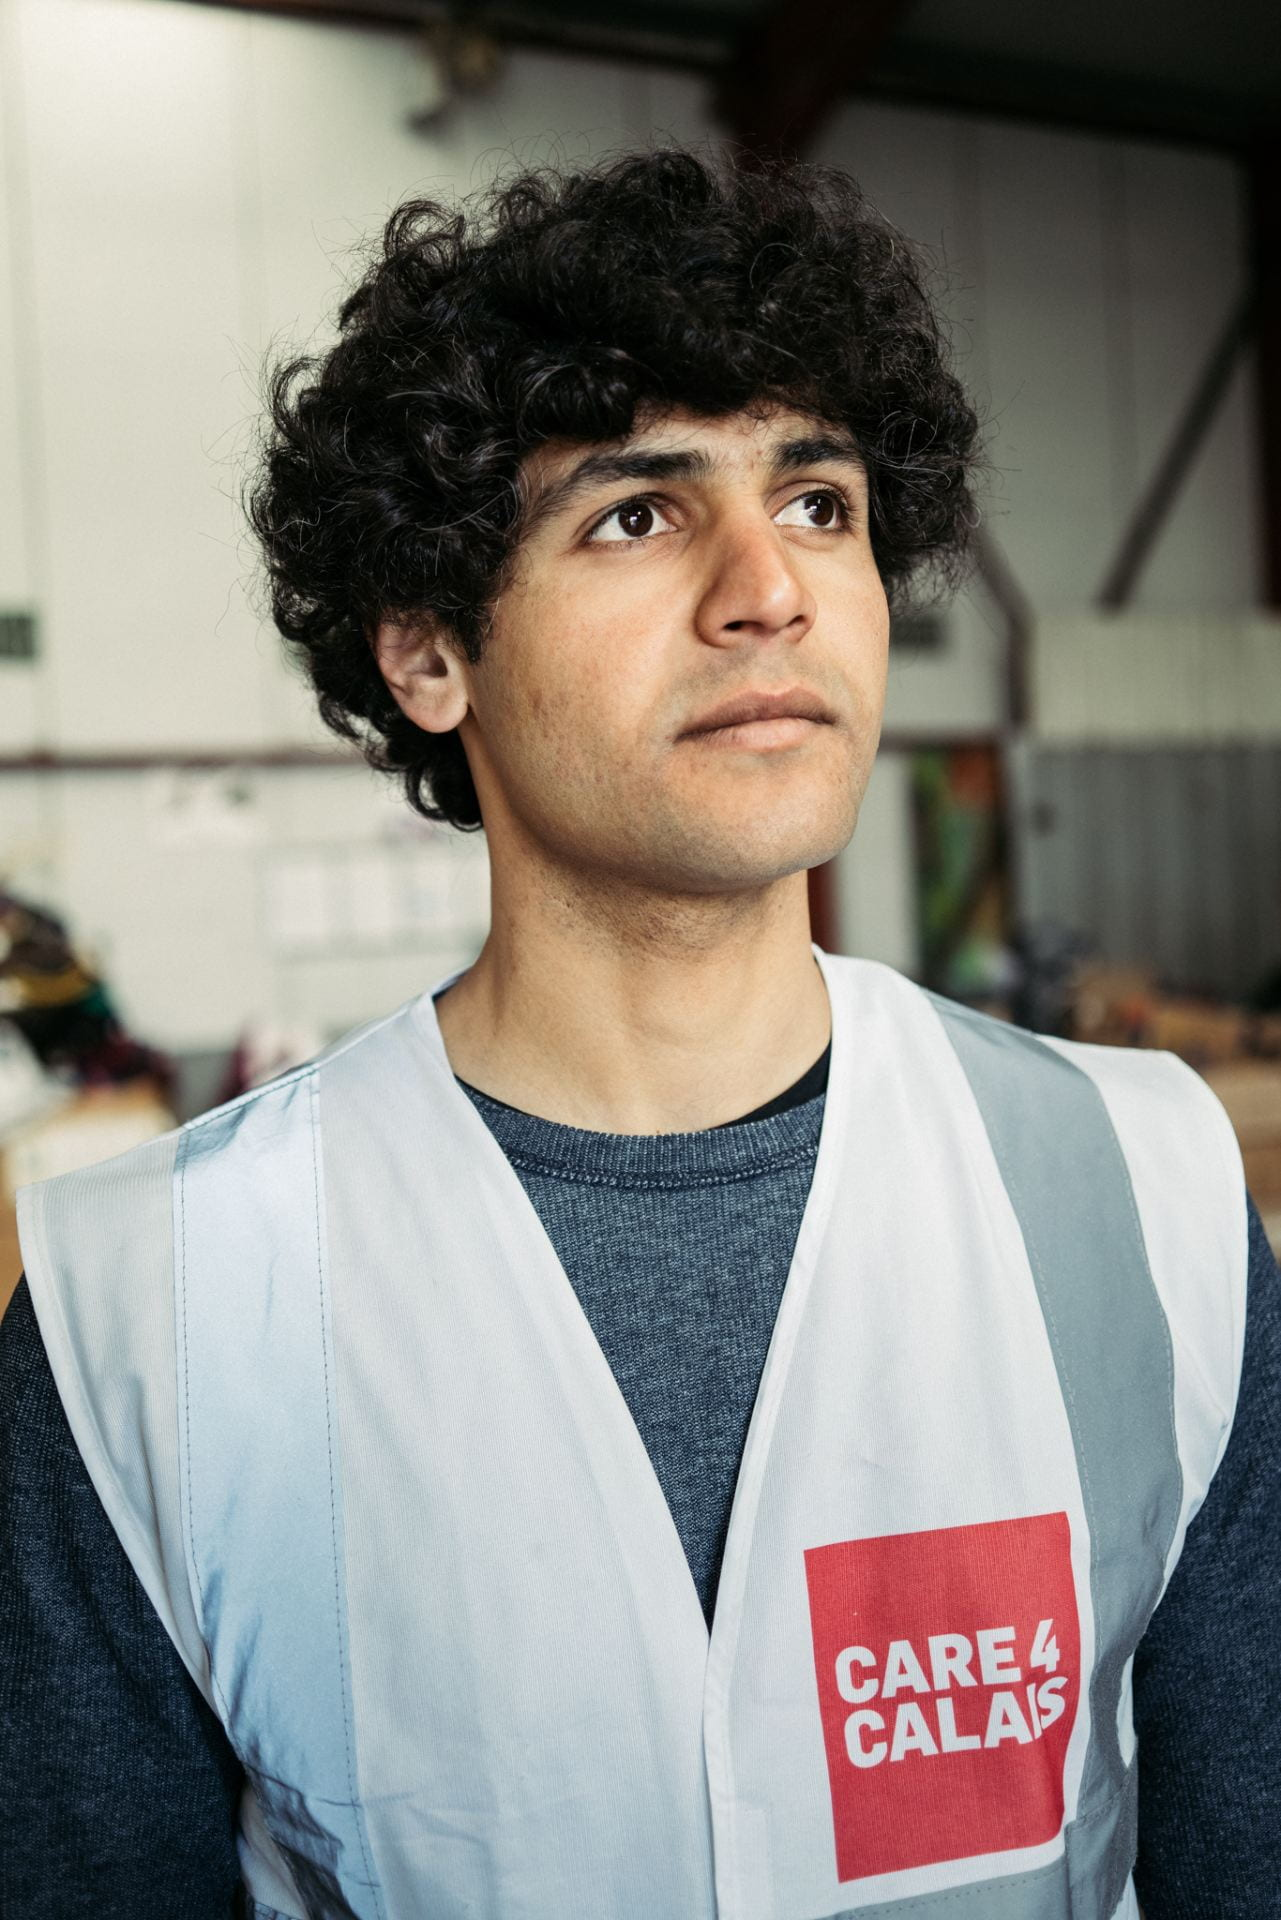 Portrait photograph of volunteer wearing off-white high visibility 'Care 4 Calais' vest.